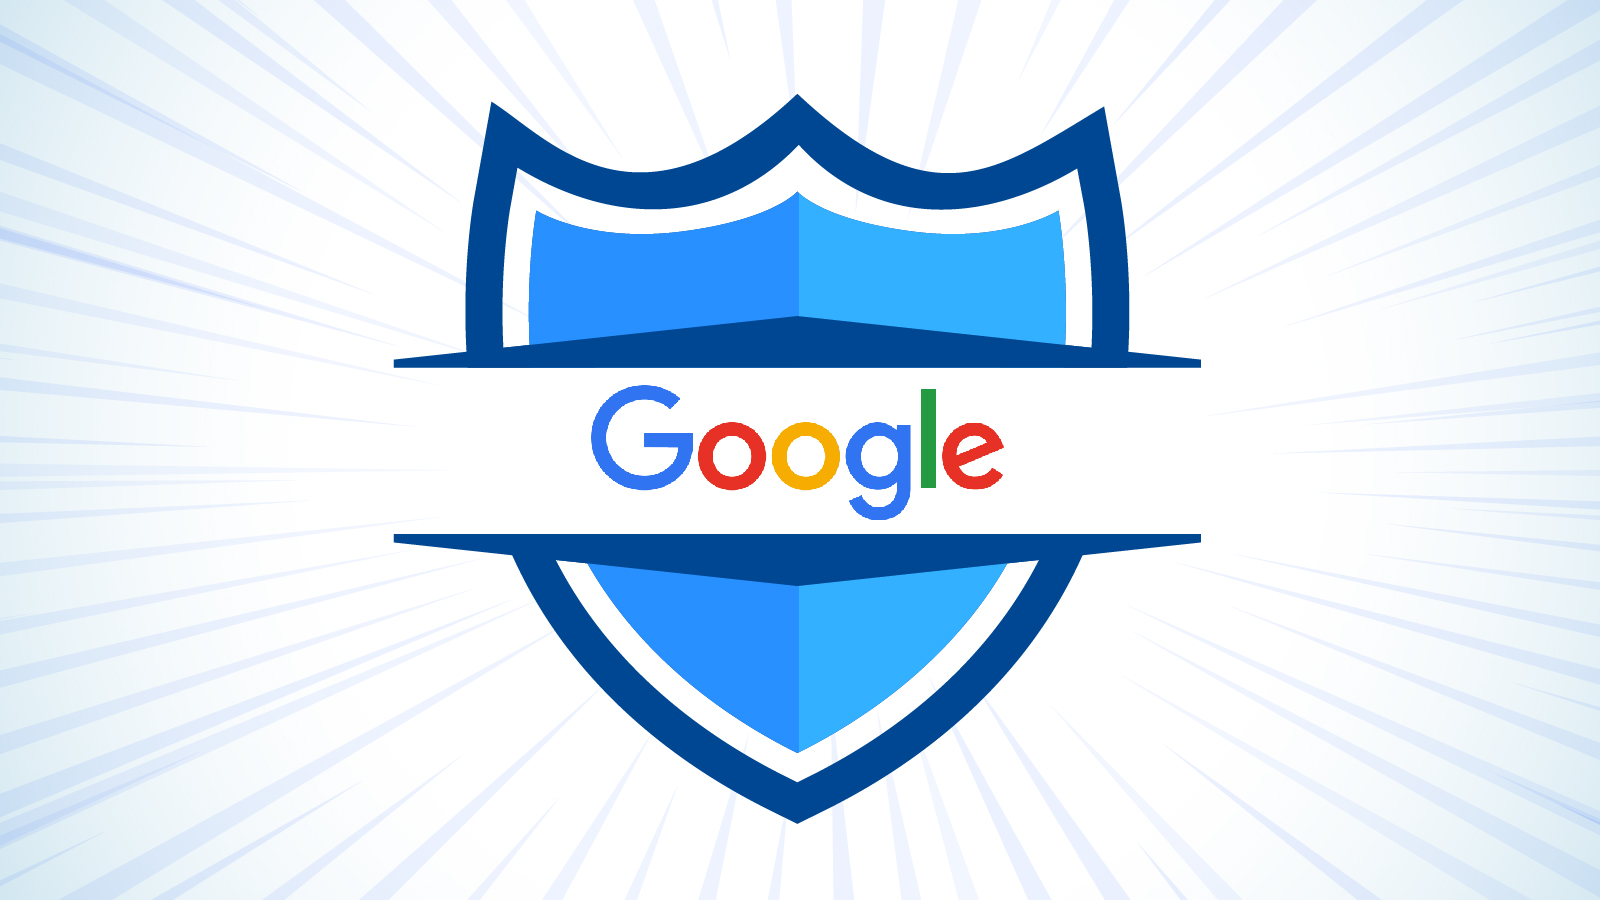 Can Google Get A Leg Up In the Confidential Computing Market With Its New Security Offerings?